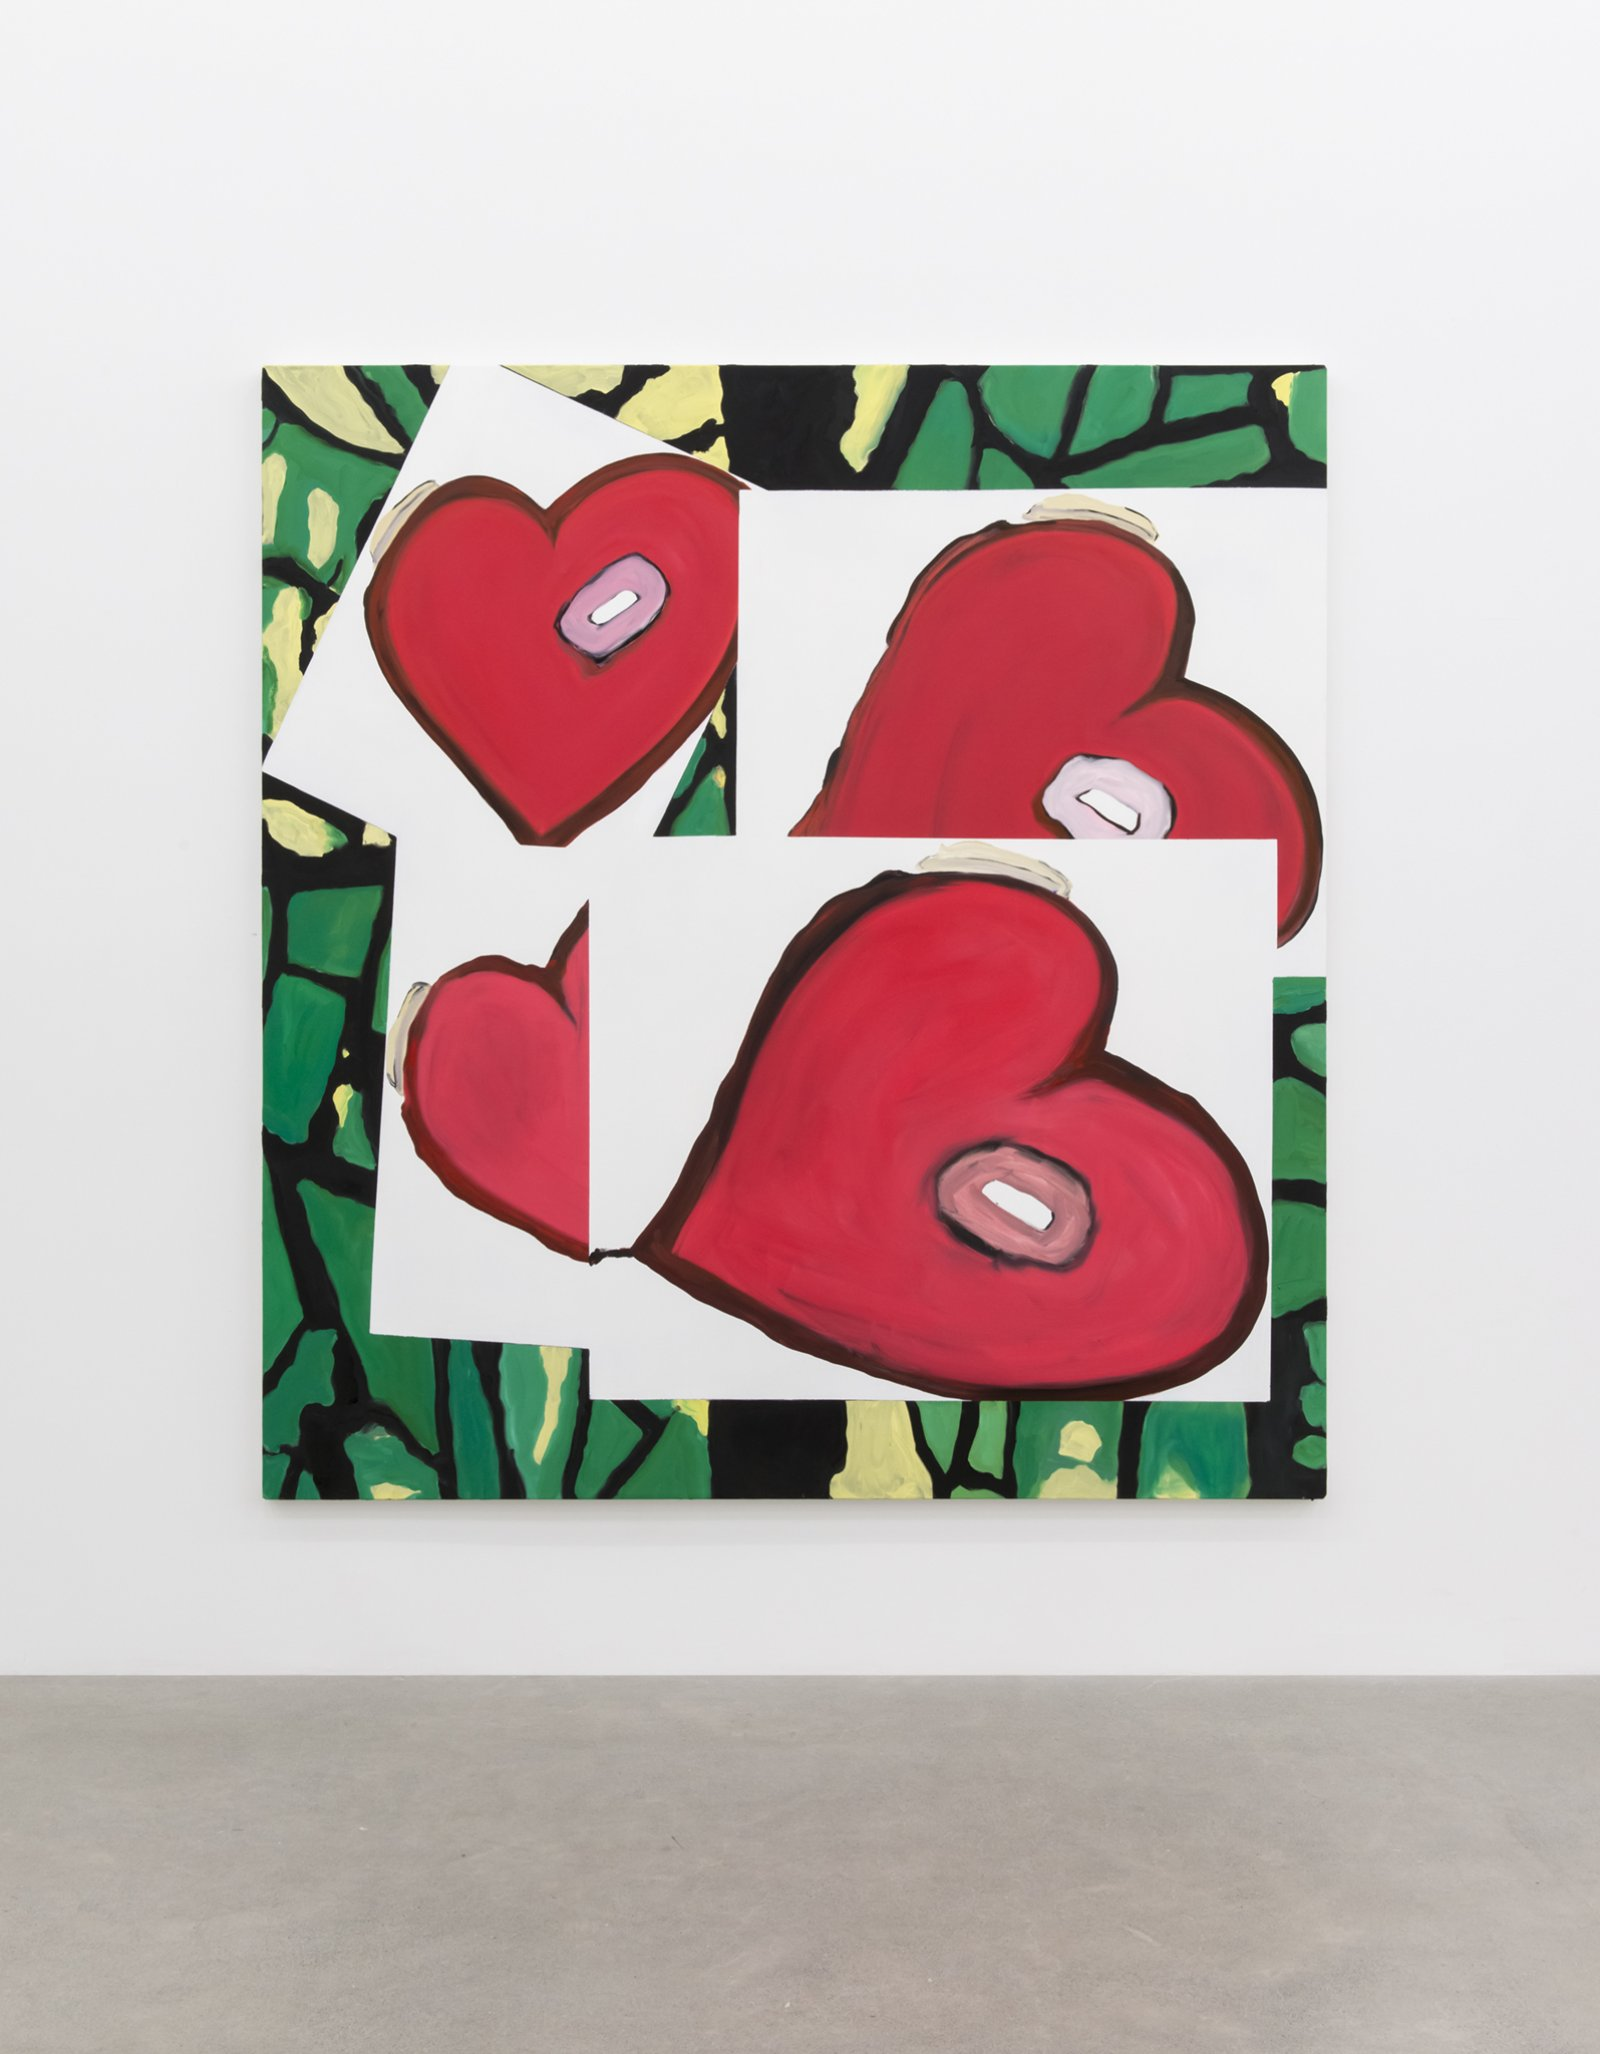 ​Elizabeth McIntosh, Heart, 2017, oil on canvas, 78 x 73 in. (199 x 186 cm) by Elizabeth McIntosh